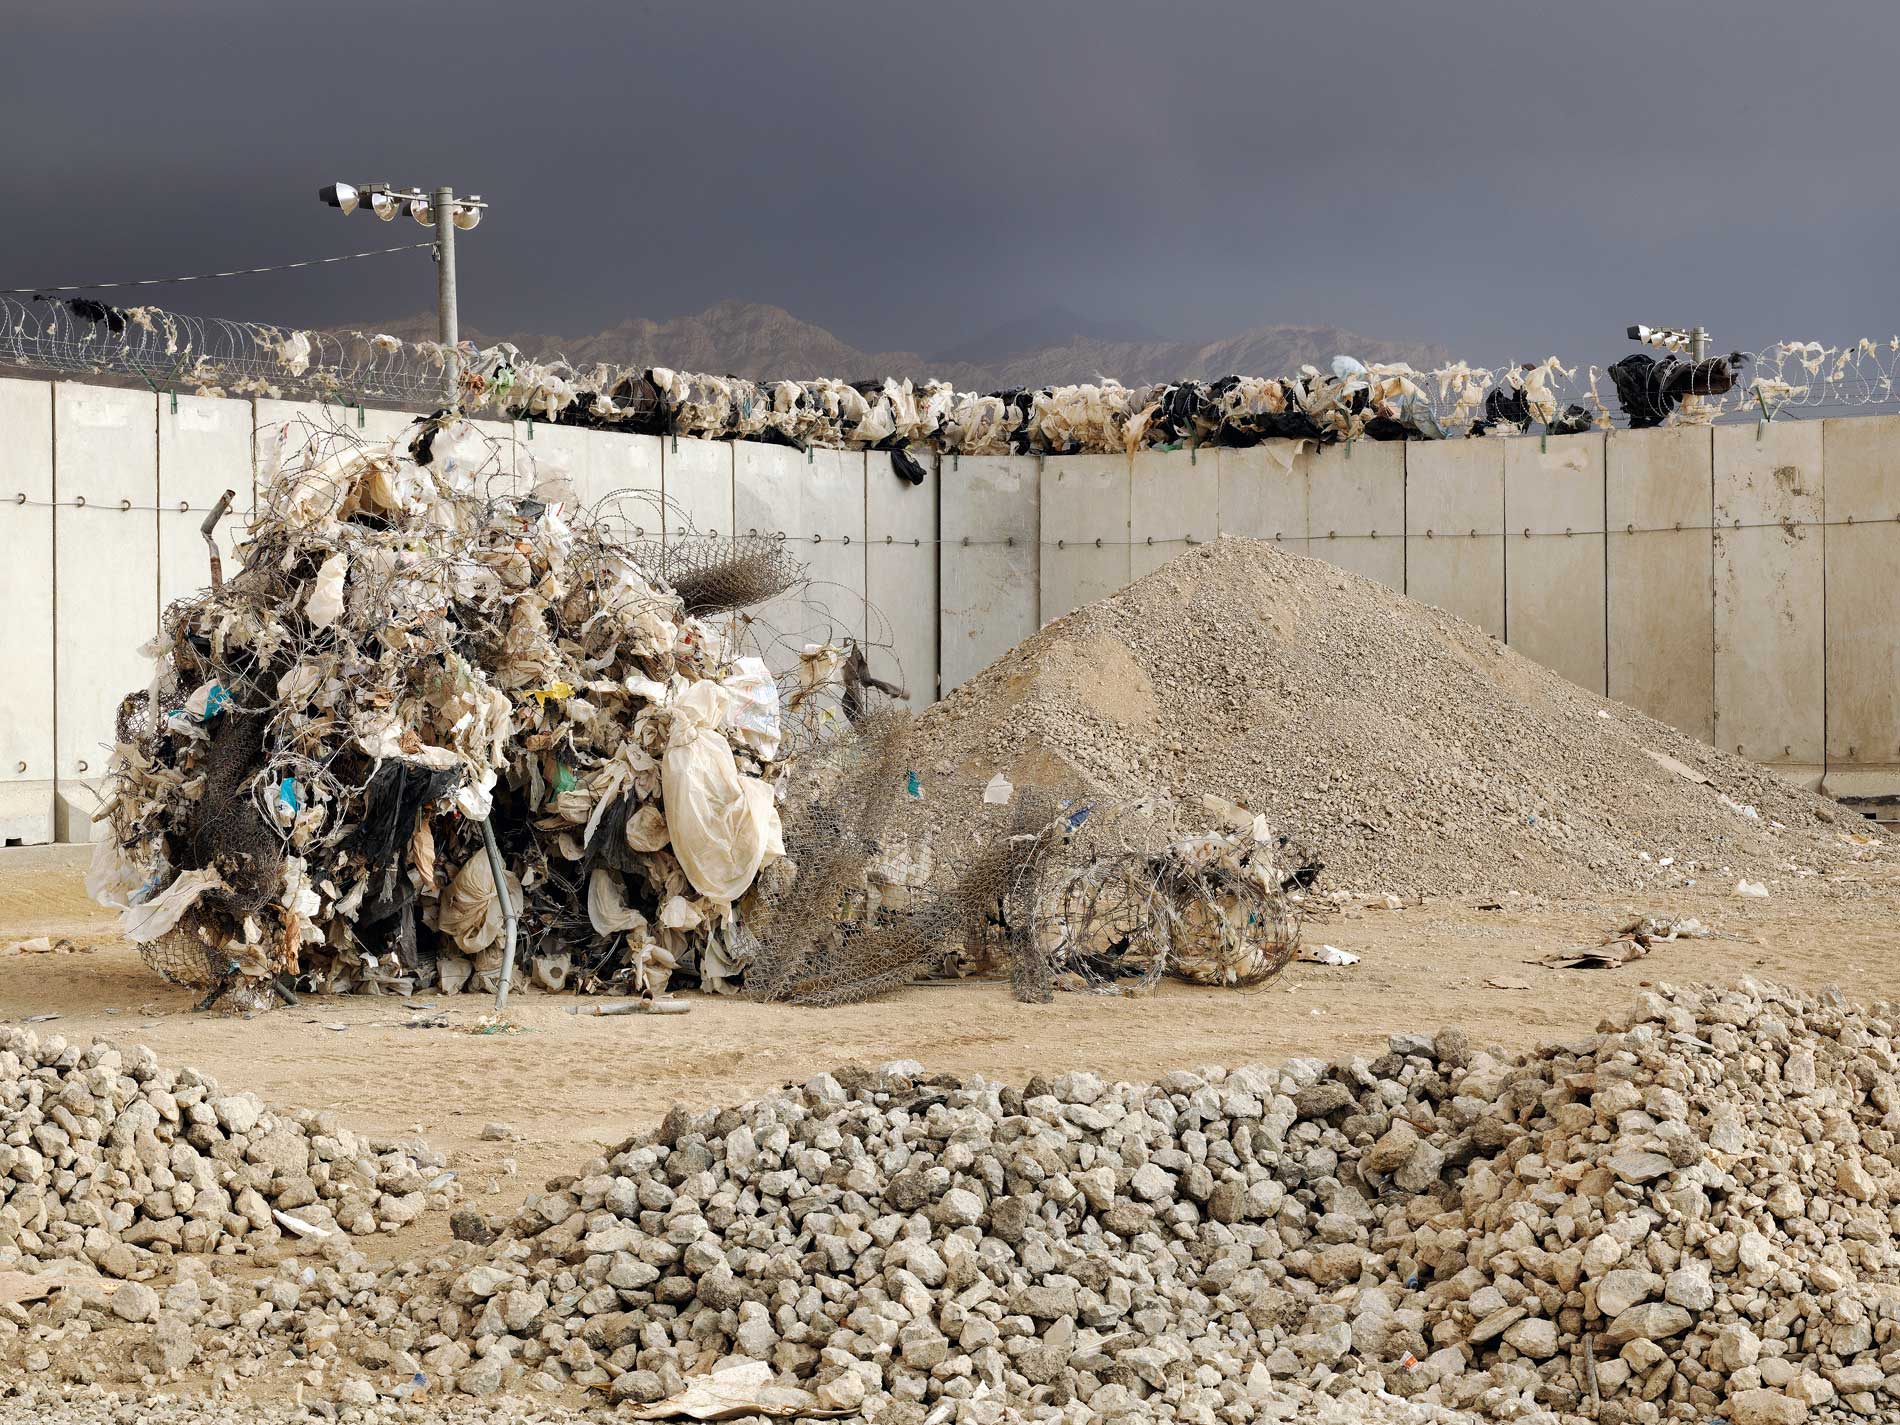 Wired Rawfile: The Mountains Of MajeedScene from Bagram Airfield U.S. military base in Afghanistan.